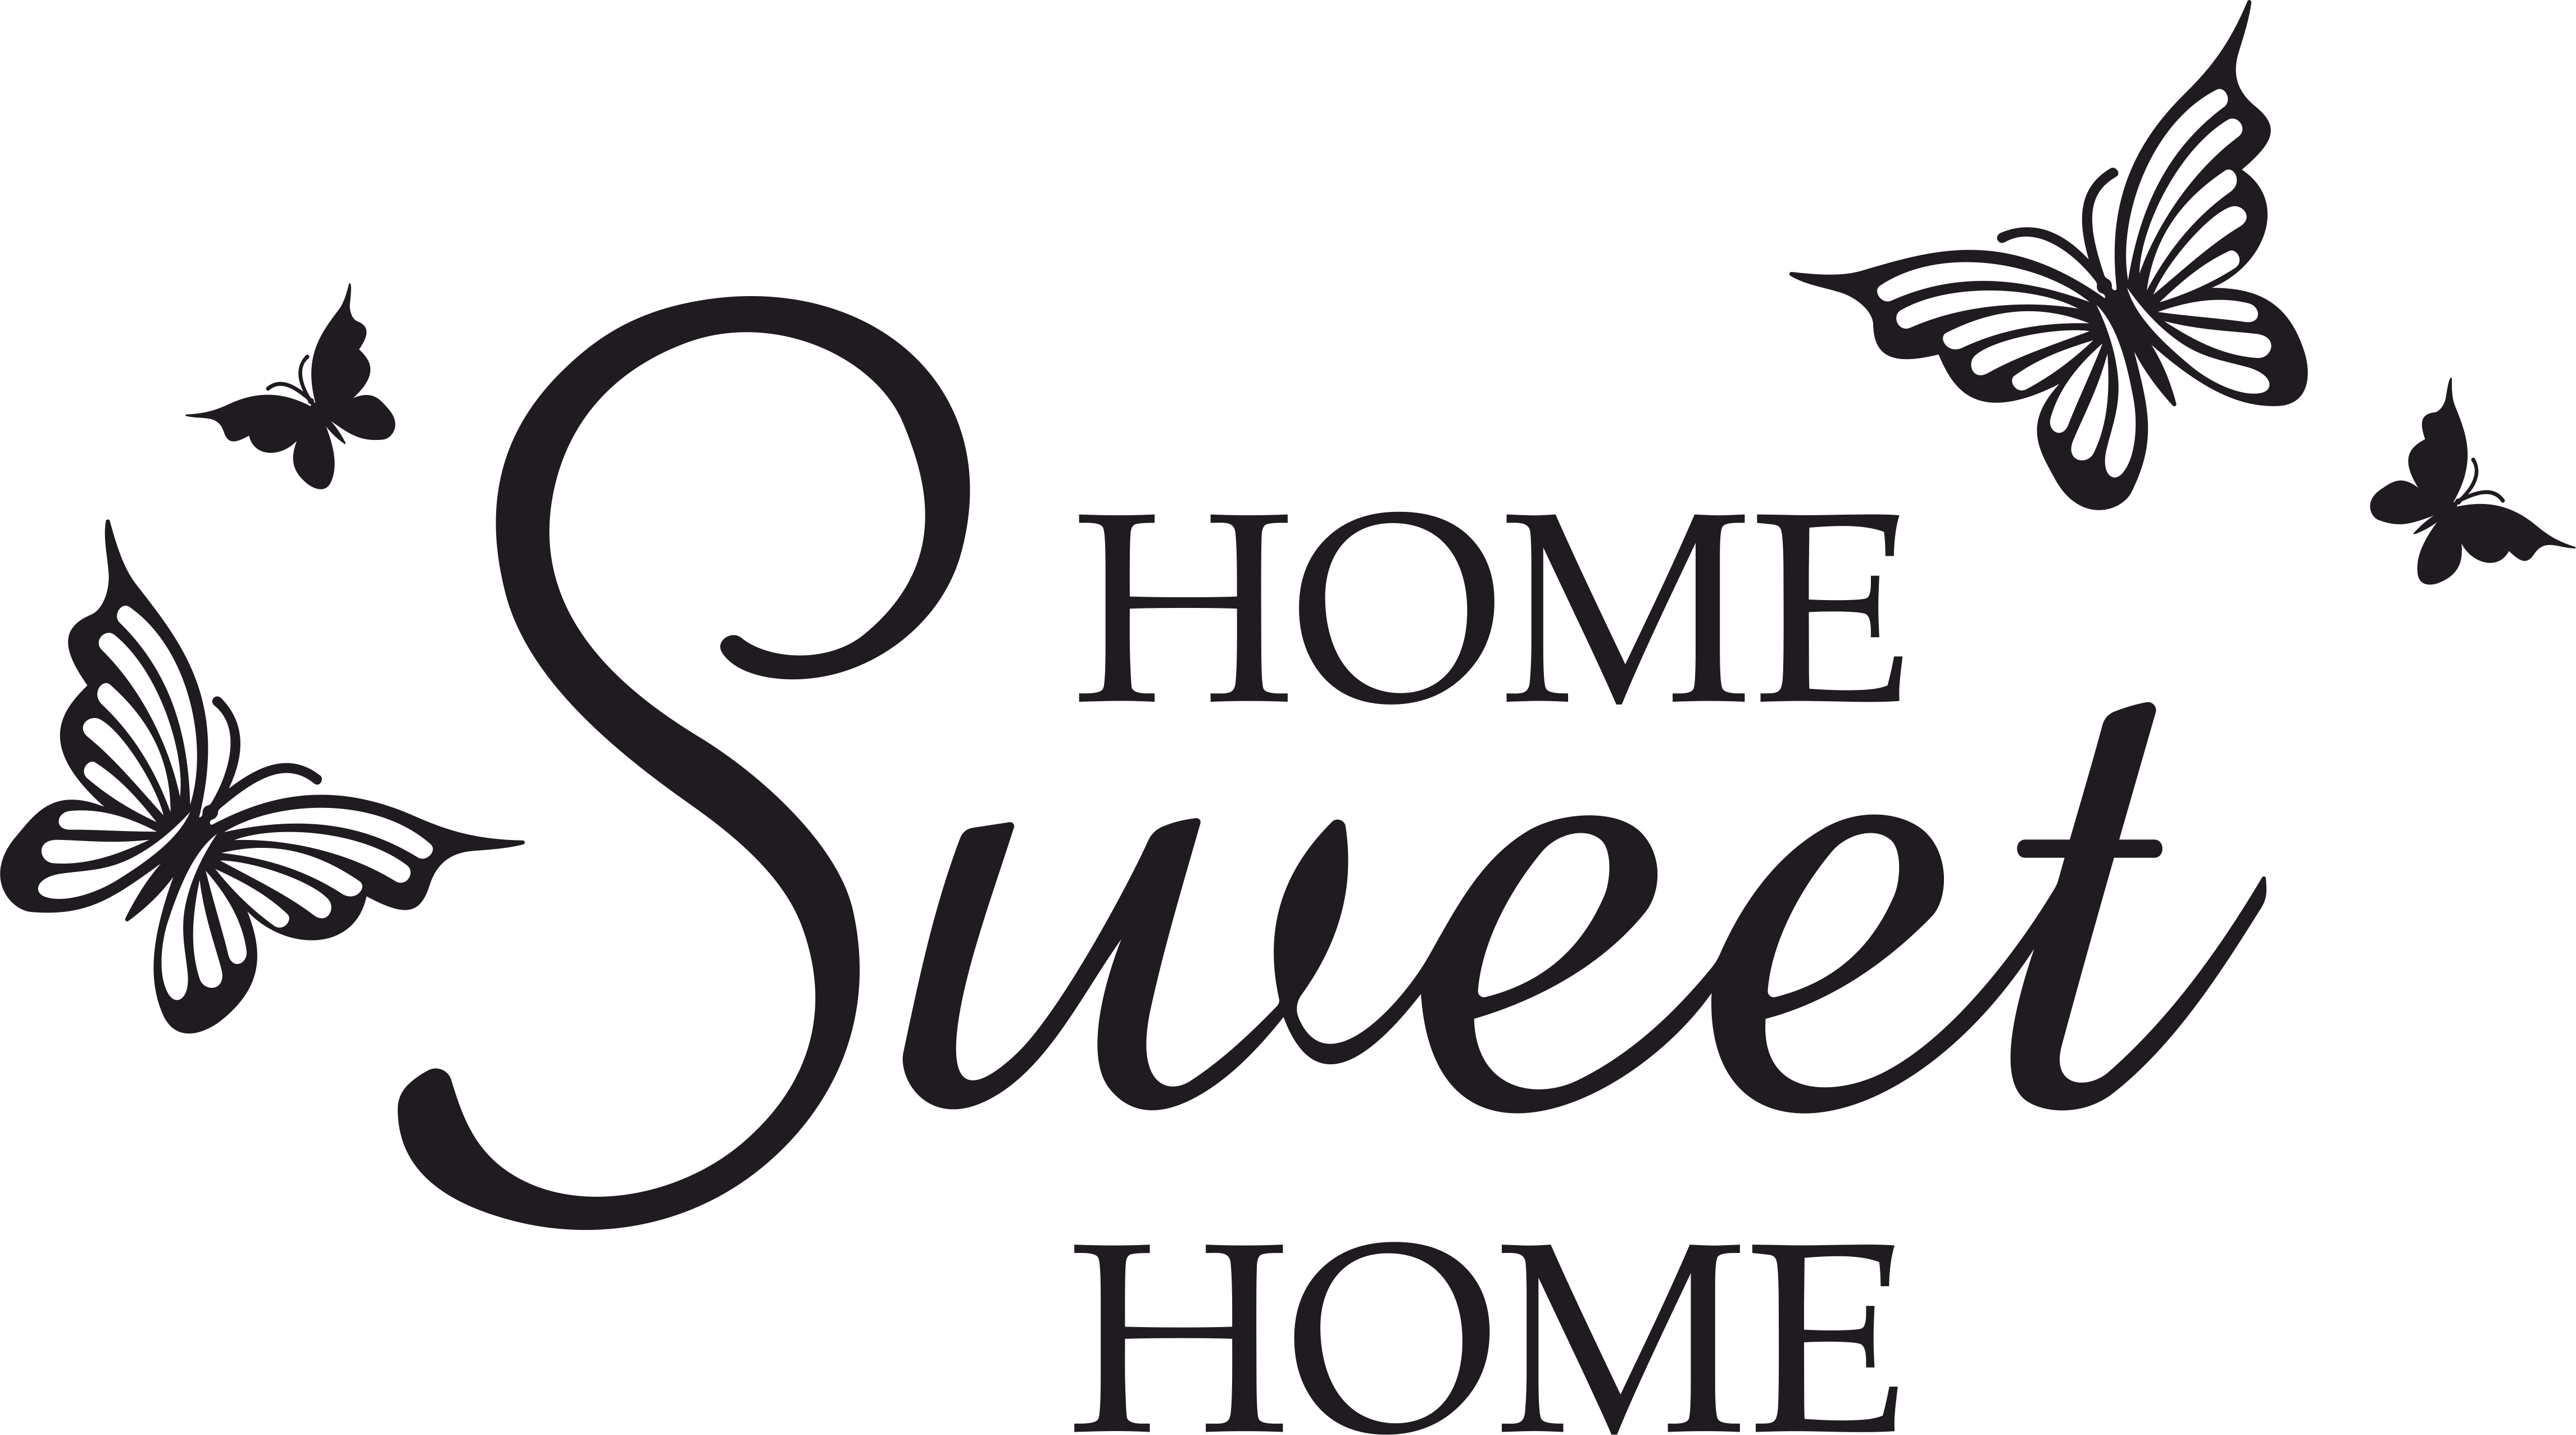 Home Sweet Home Butterfly SVG, DXF, EPS, png, by vectordesign on